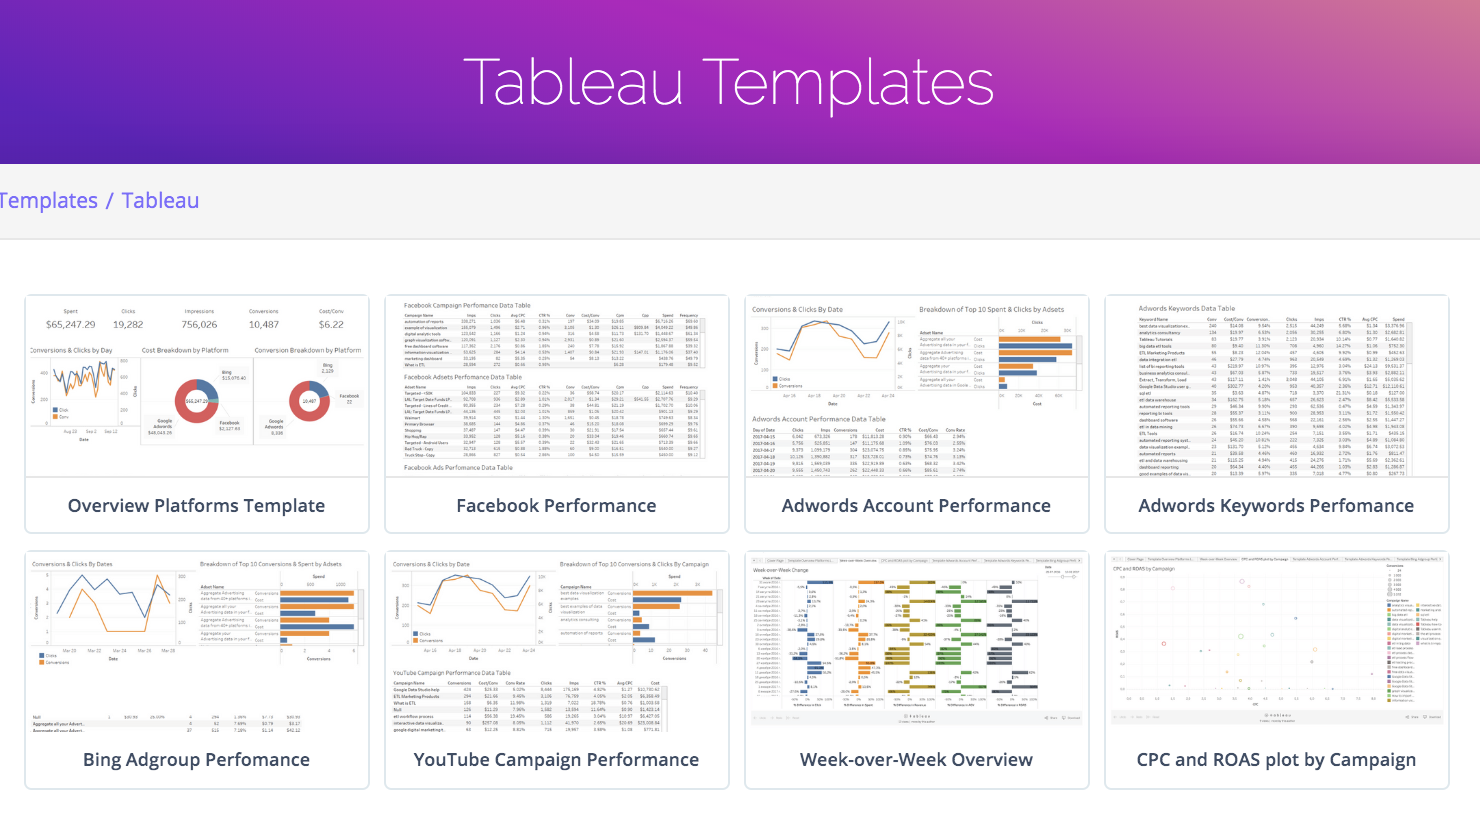 Free Tableau Templates for Marketing Analytics